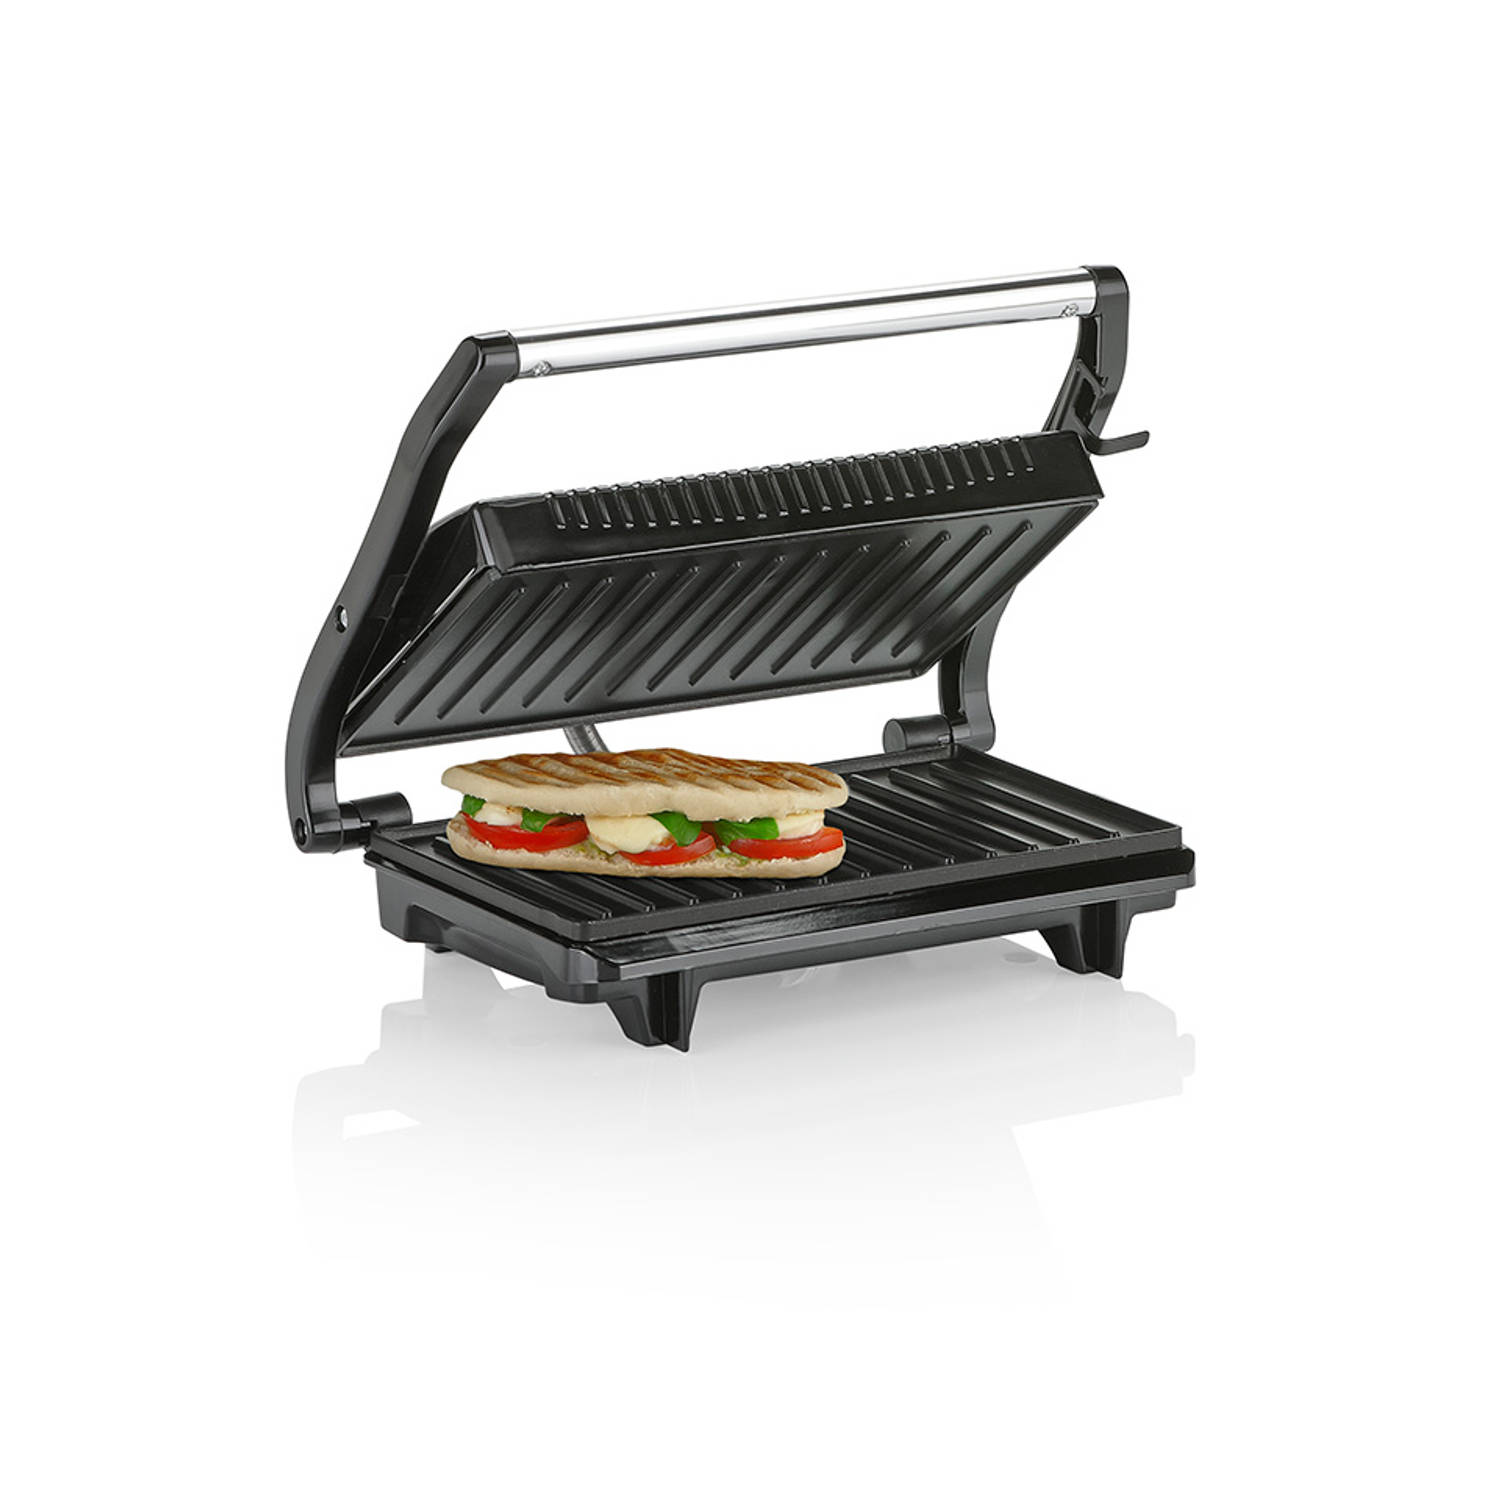 Korting Tristar contactgrill gr 2846